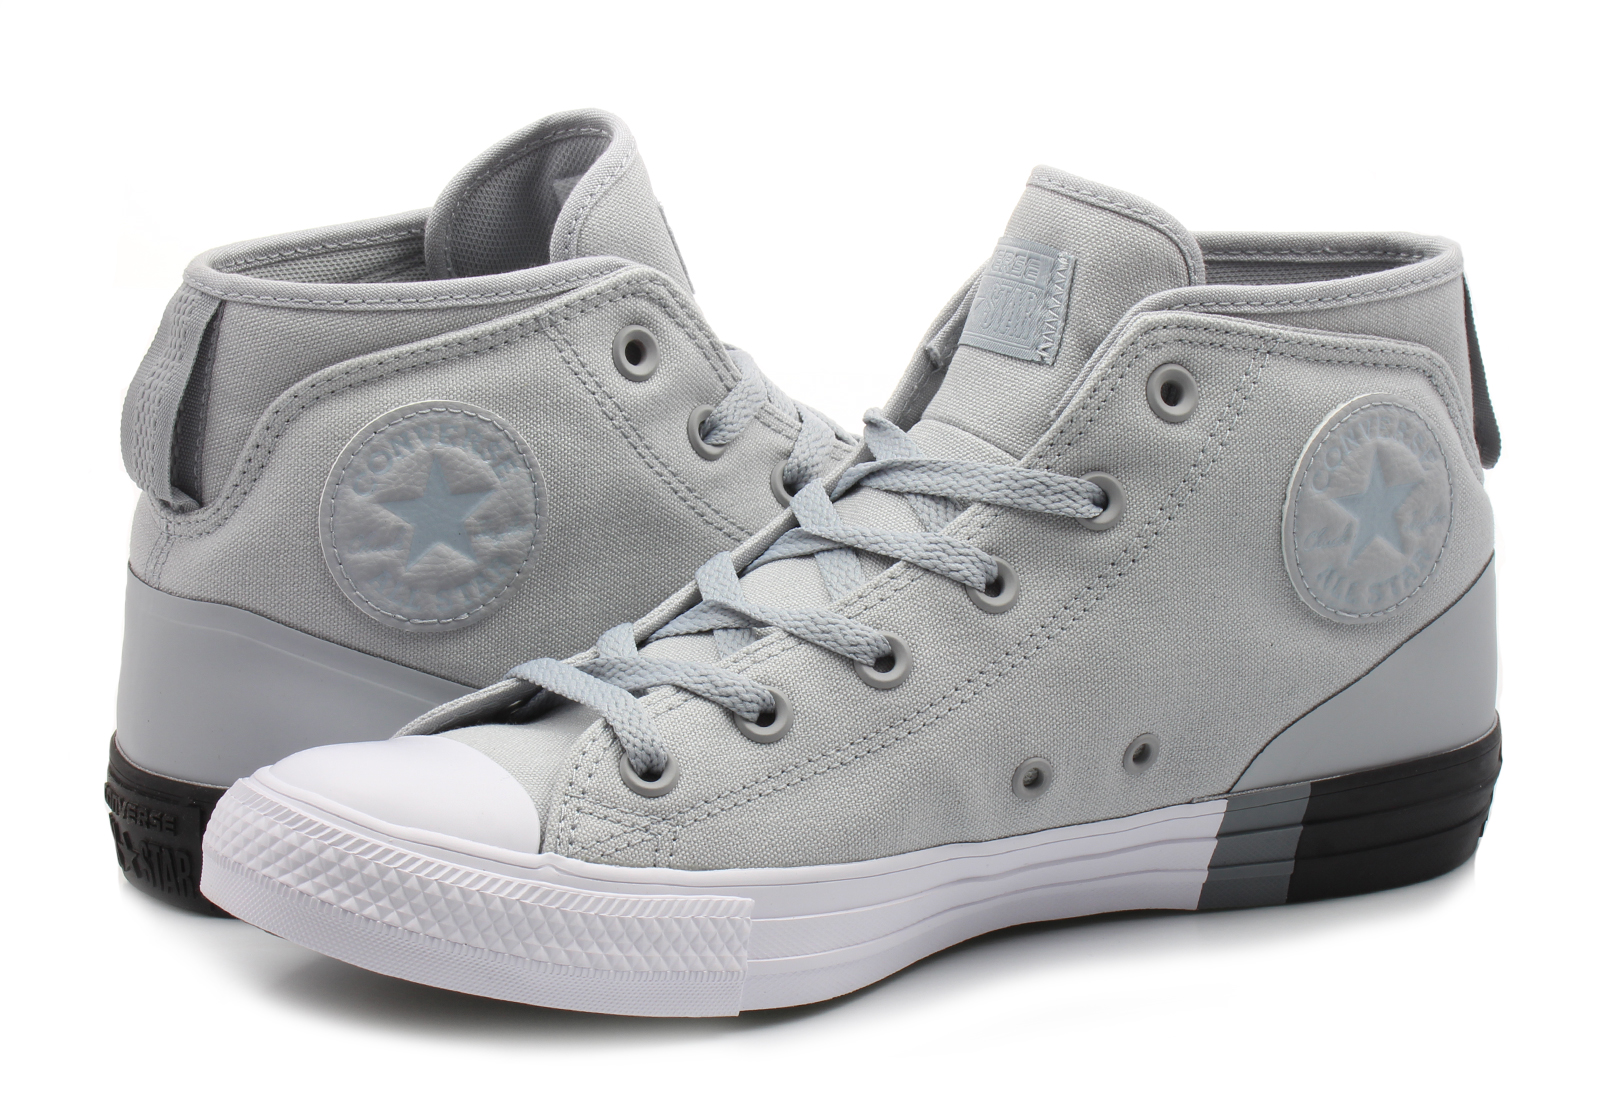 Converse Sneakers - Chuck Taylor All Star Syde Street - 159640C ... b37be402b